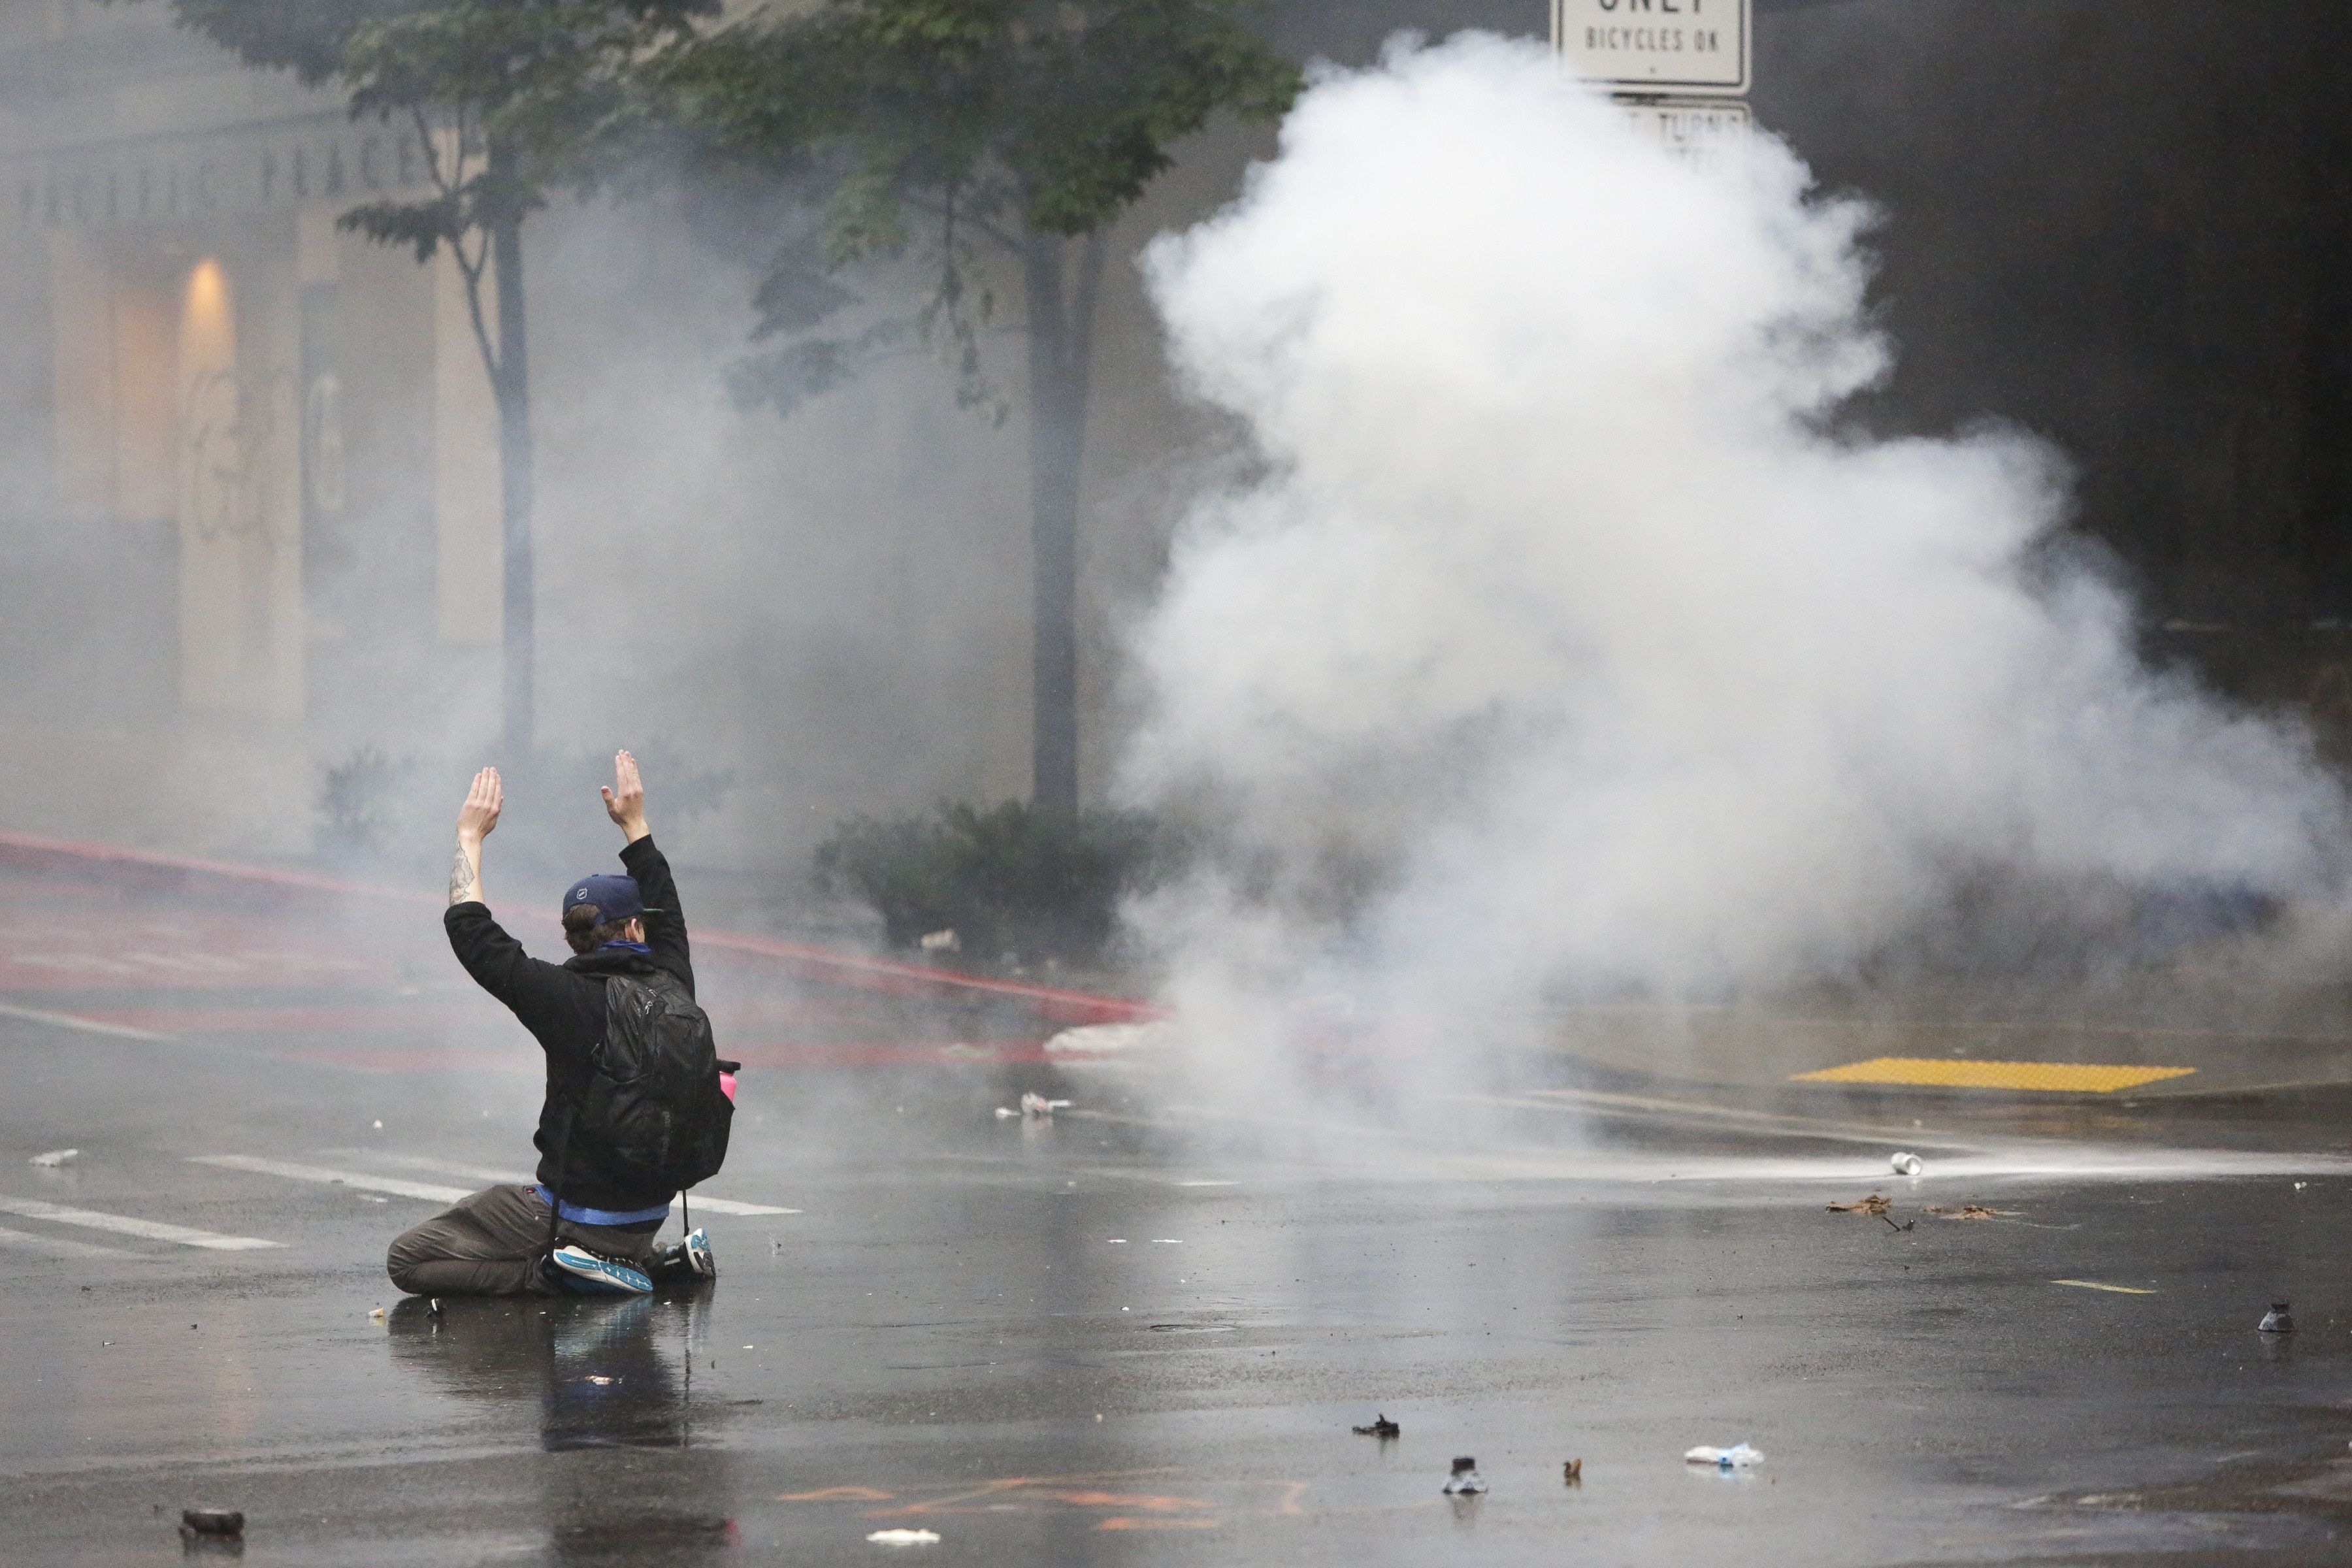 Seattle mayor bans use of tear gas on protesters for 30 days